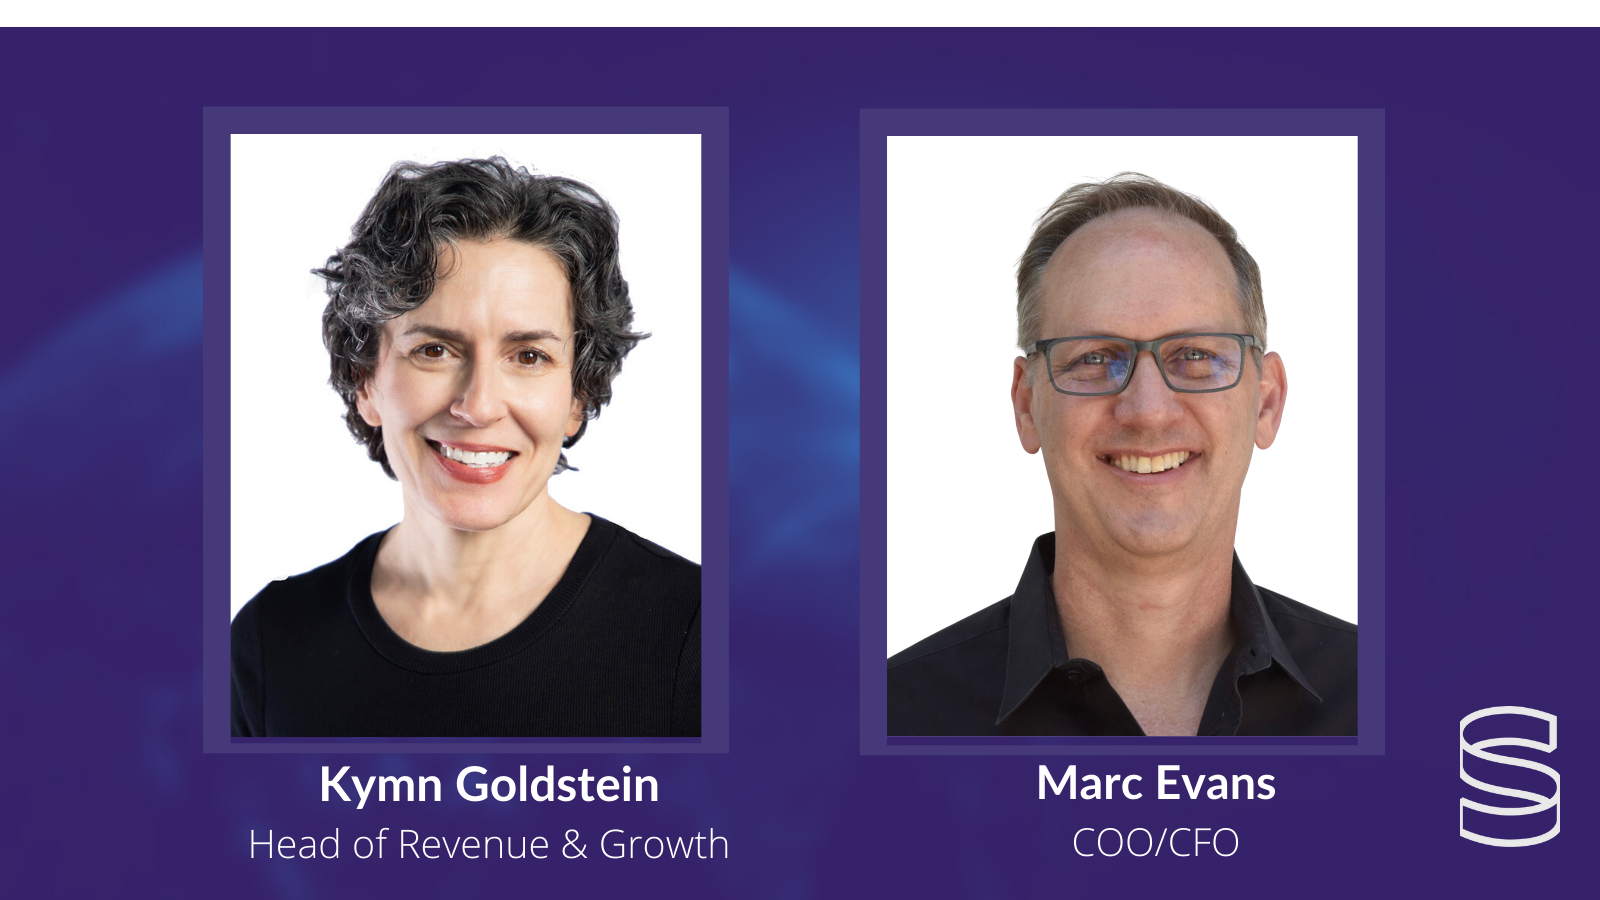 We're Thrilled to Welcome Entertainment Executives Kymn Goldstein & Marc Evans to the StoryFit Team